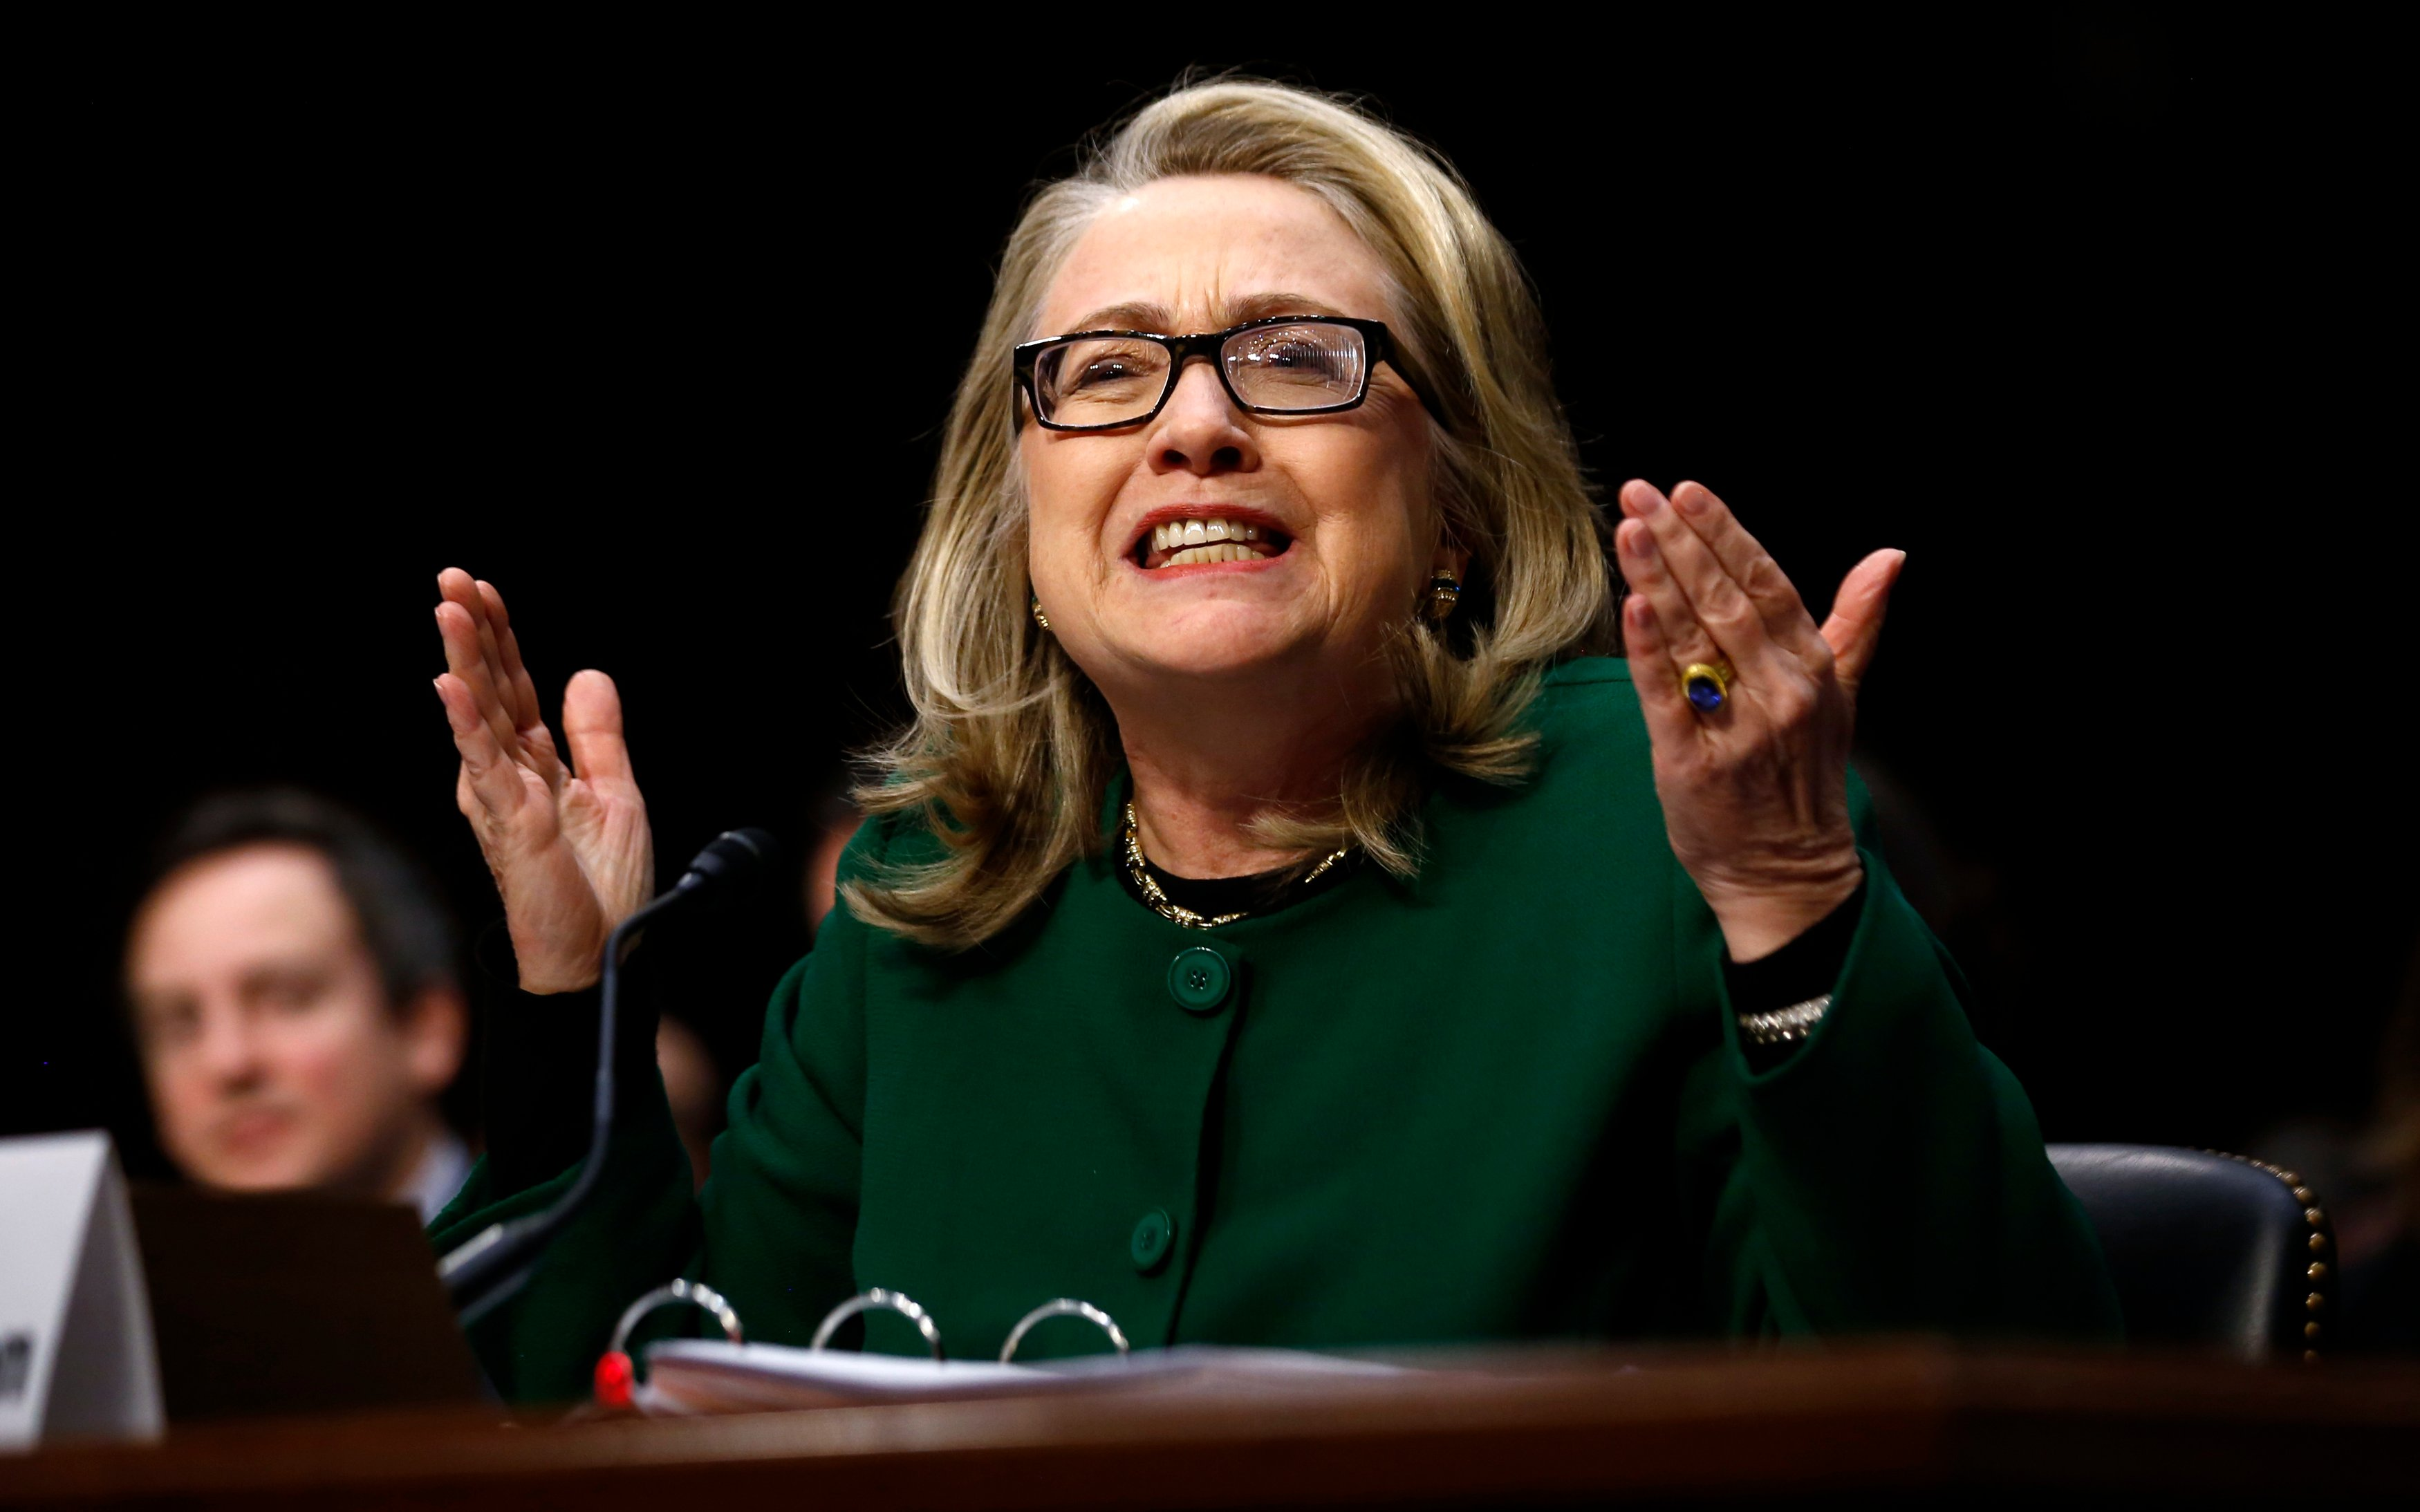 U.S. Secretary of State Hillary Clinton responds forcefully to intense questioning on the September attacks on U.S. diplomatic sites in Benghazi, Libya, during a Senate Foreign Relations Committee hearing on Capitol Hill in Washington January 23, 2013. REUTERS/Jason Reed